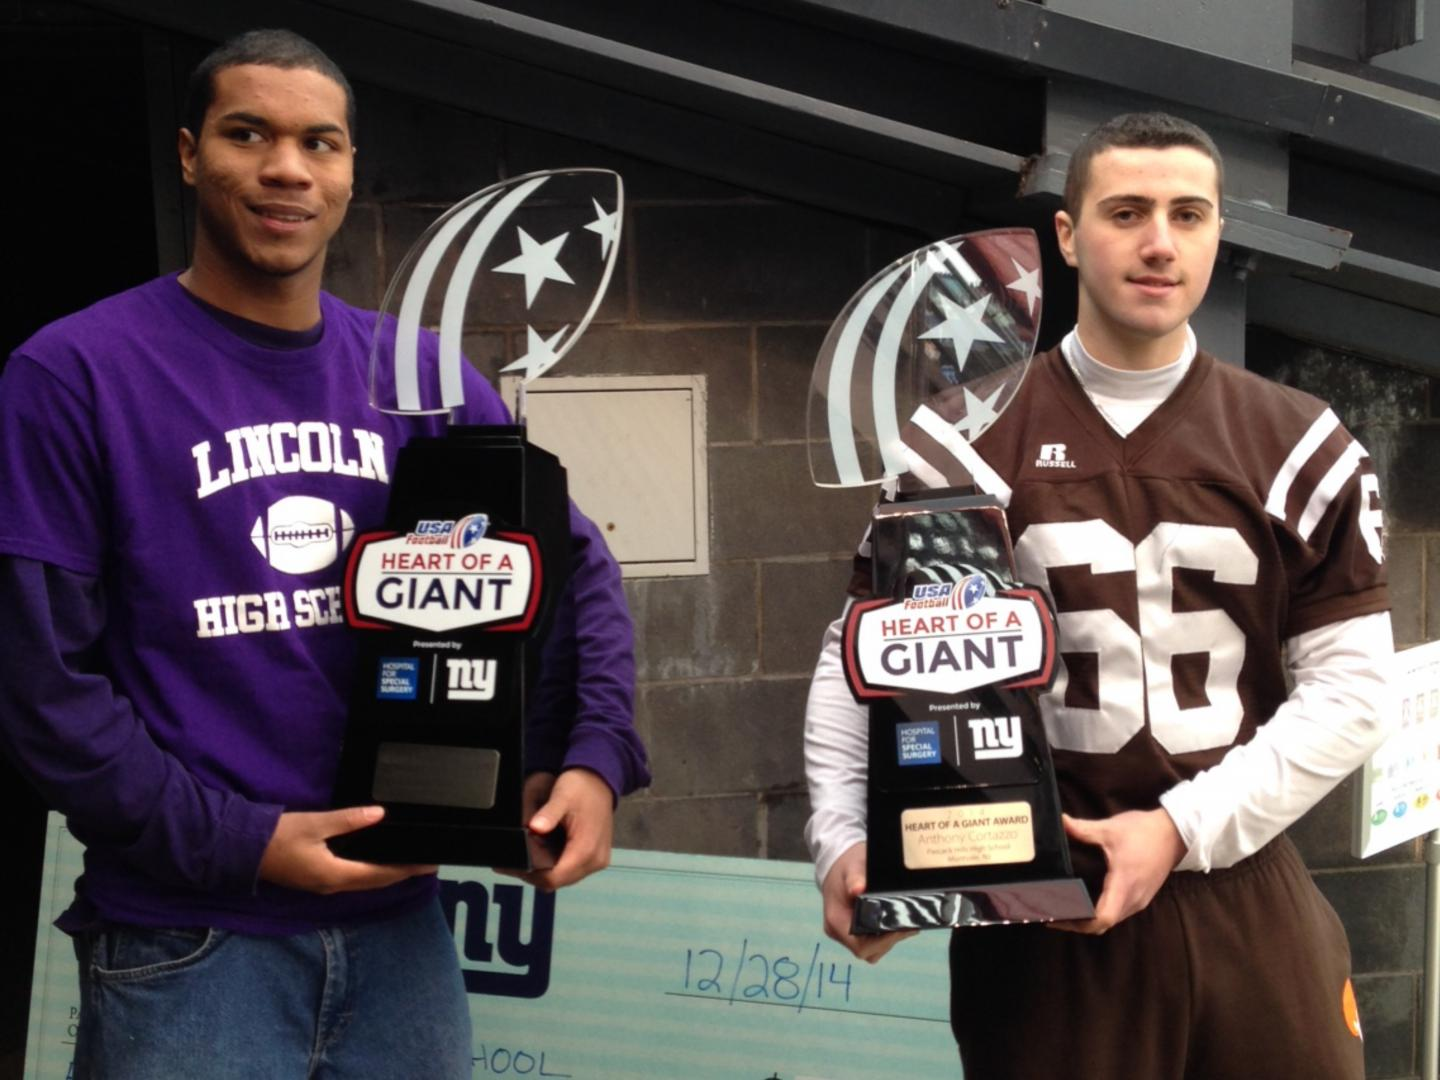 USA Football Heart of a Giant Award presented by Hospital for Special Surgery and the New York Giants Thumbnail